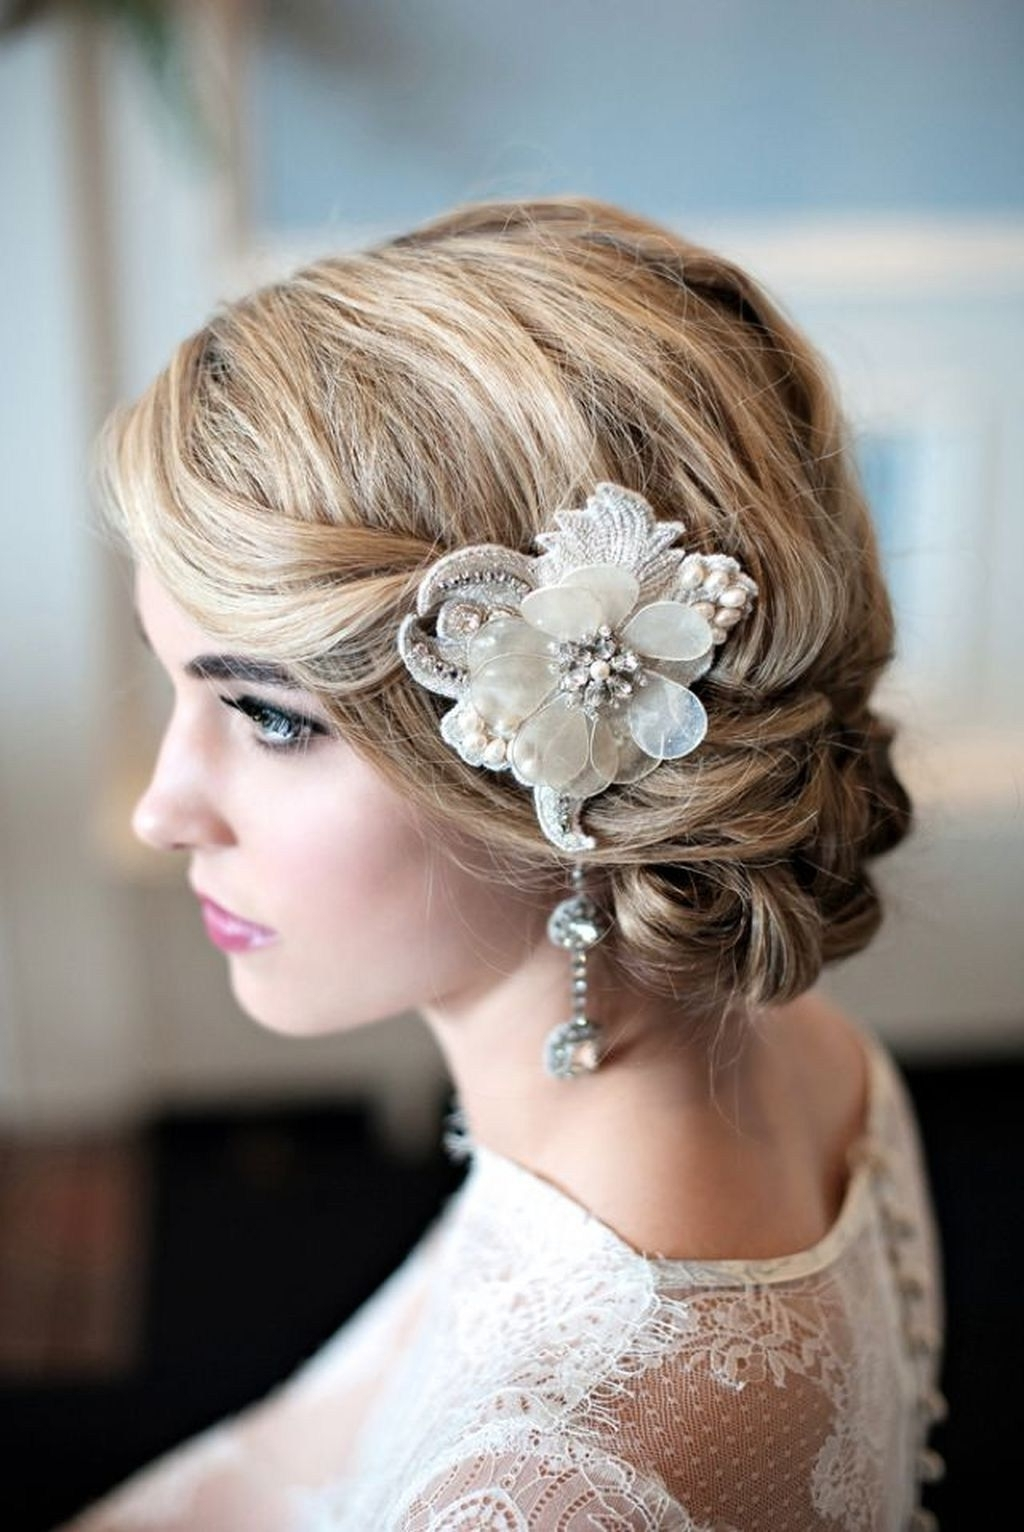 2018 Vintage Wedding Hairstyles Throughout Most Beautiful Vintage Wedding Hairstyles Ideas (View 1 of 15)